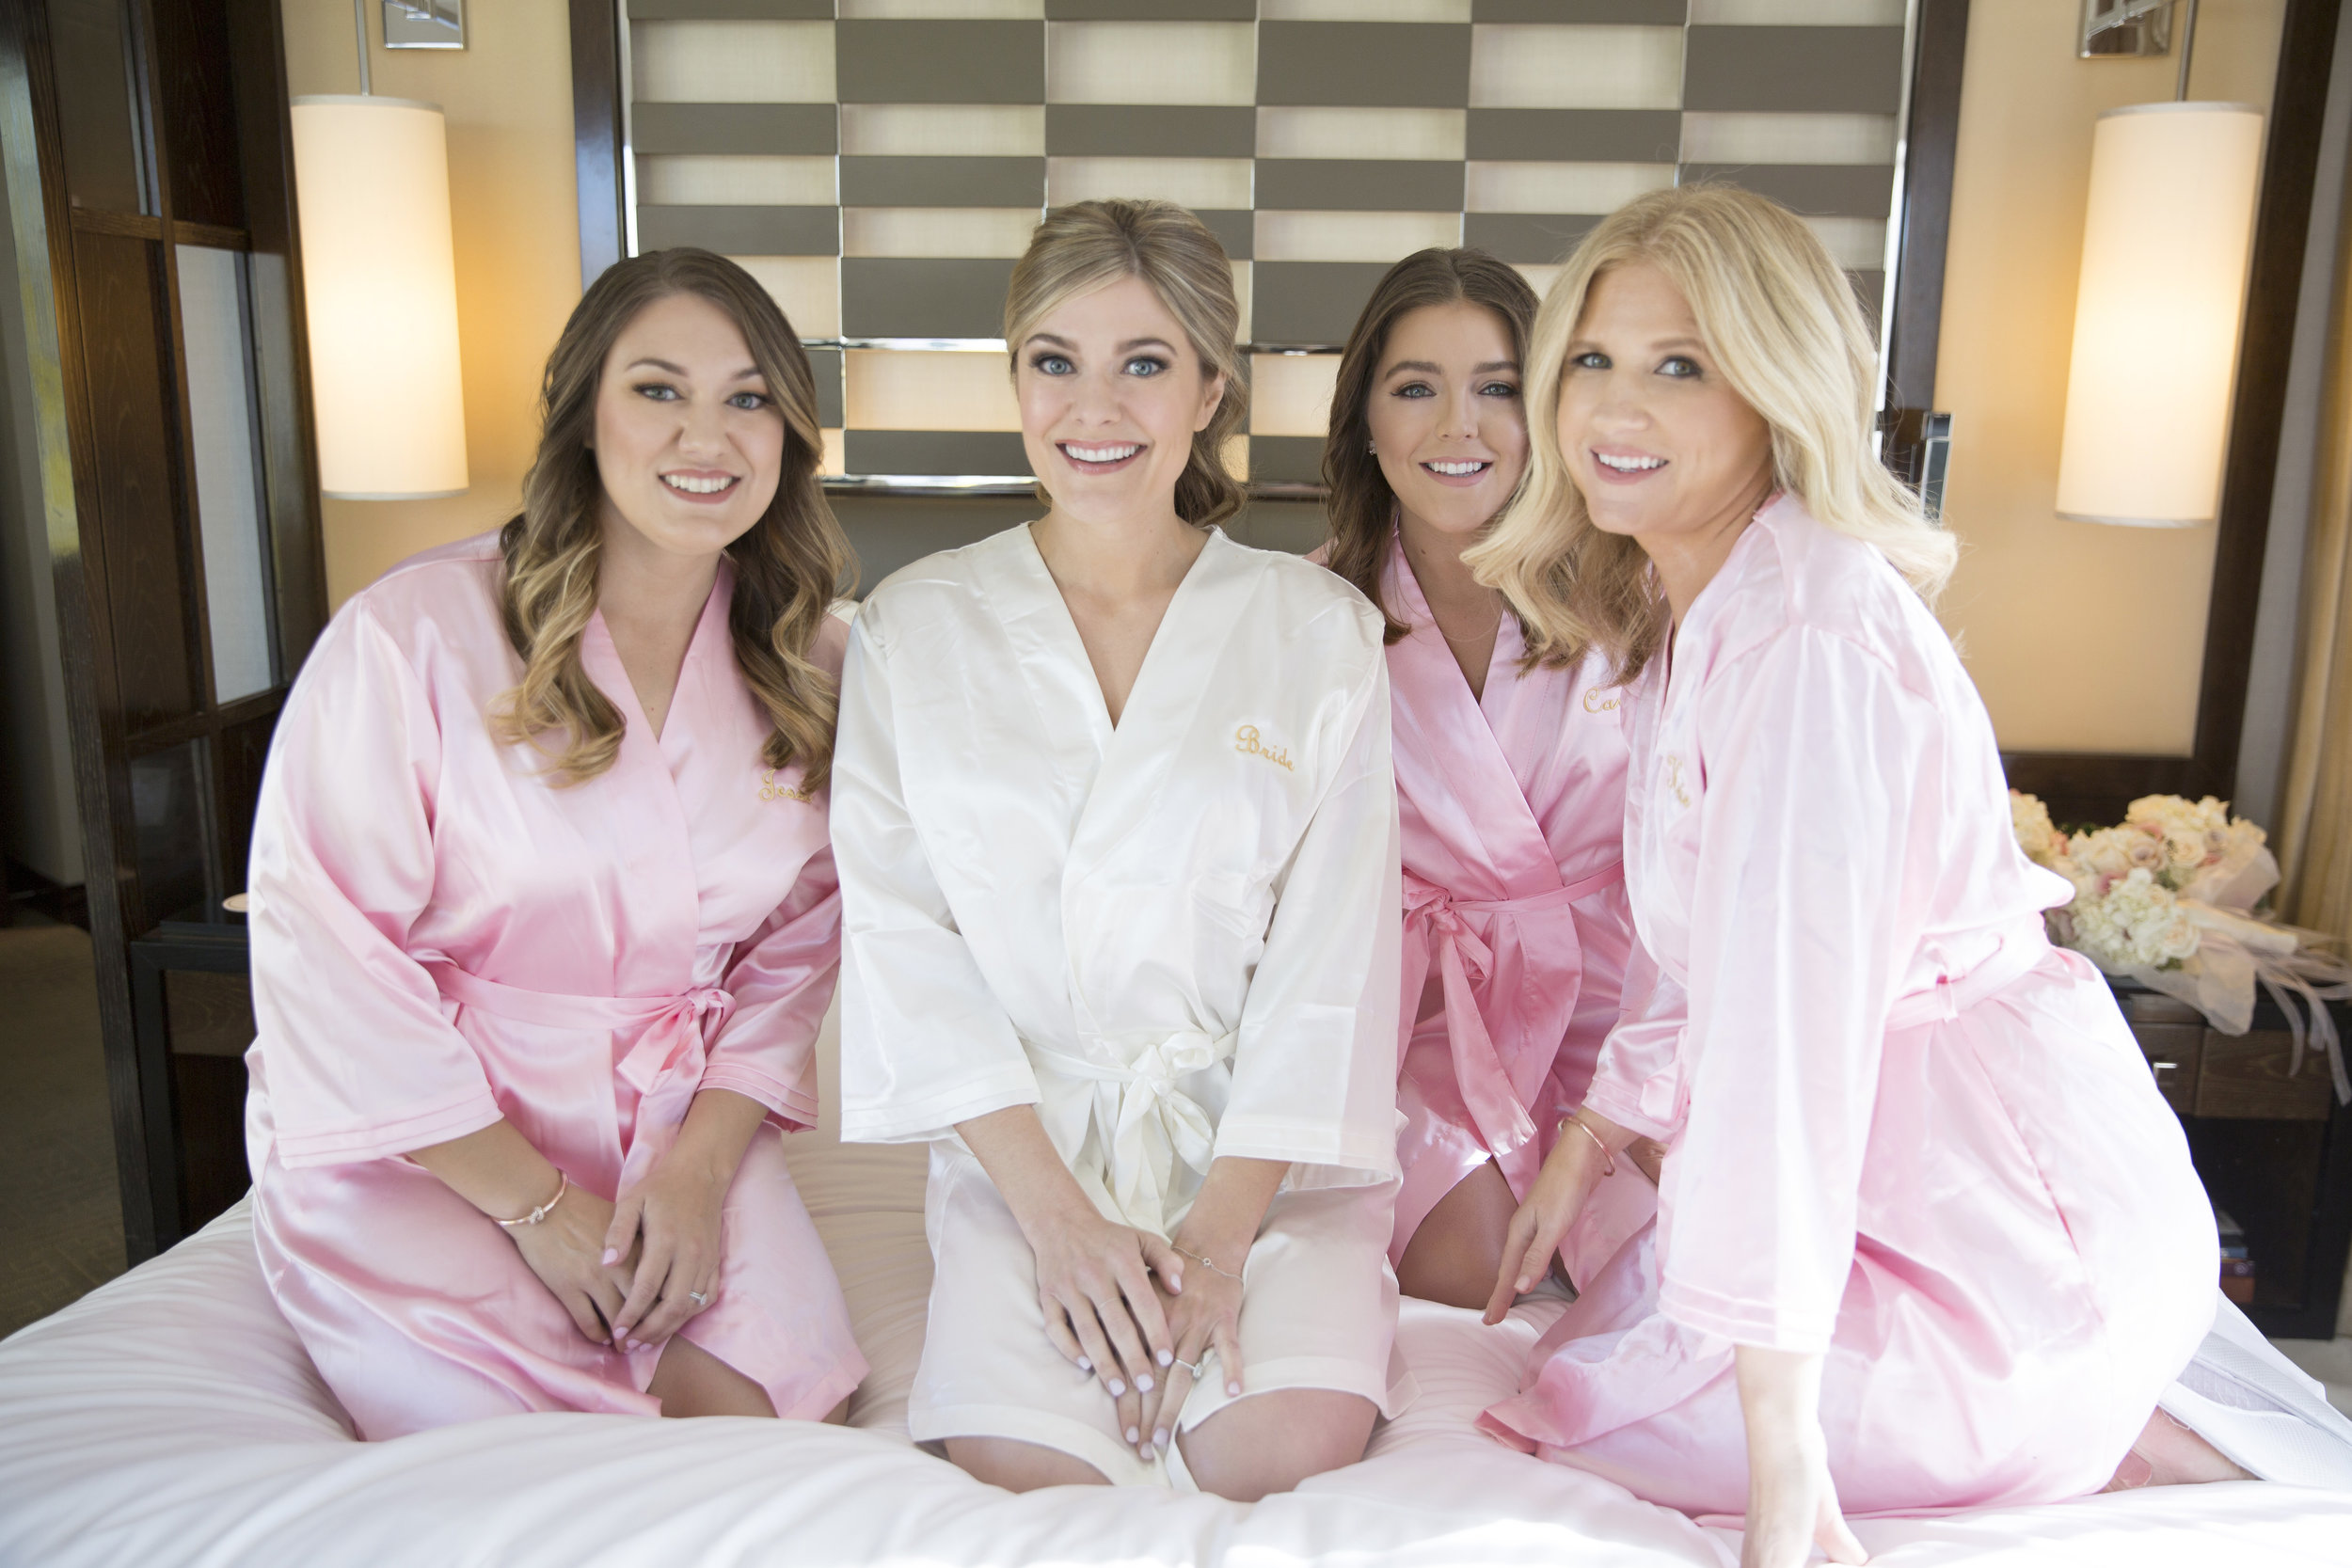 Bridesmaids in matching silk robes. http://www.earth13.com/weddings/aaron-and-jennifer/